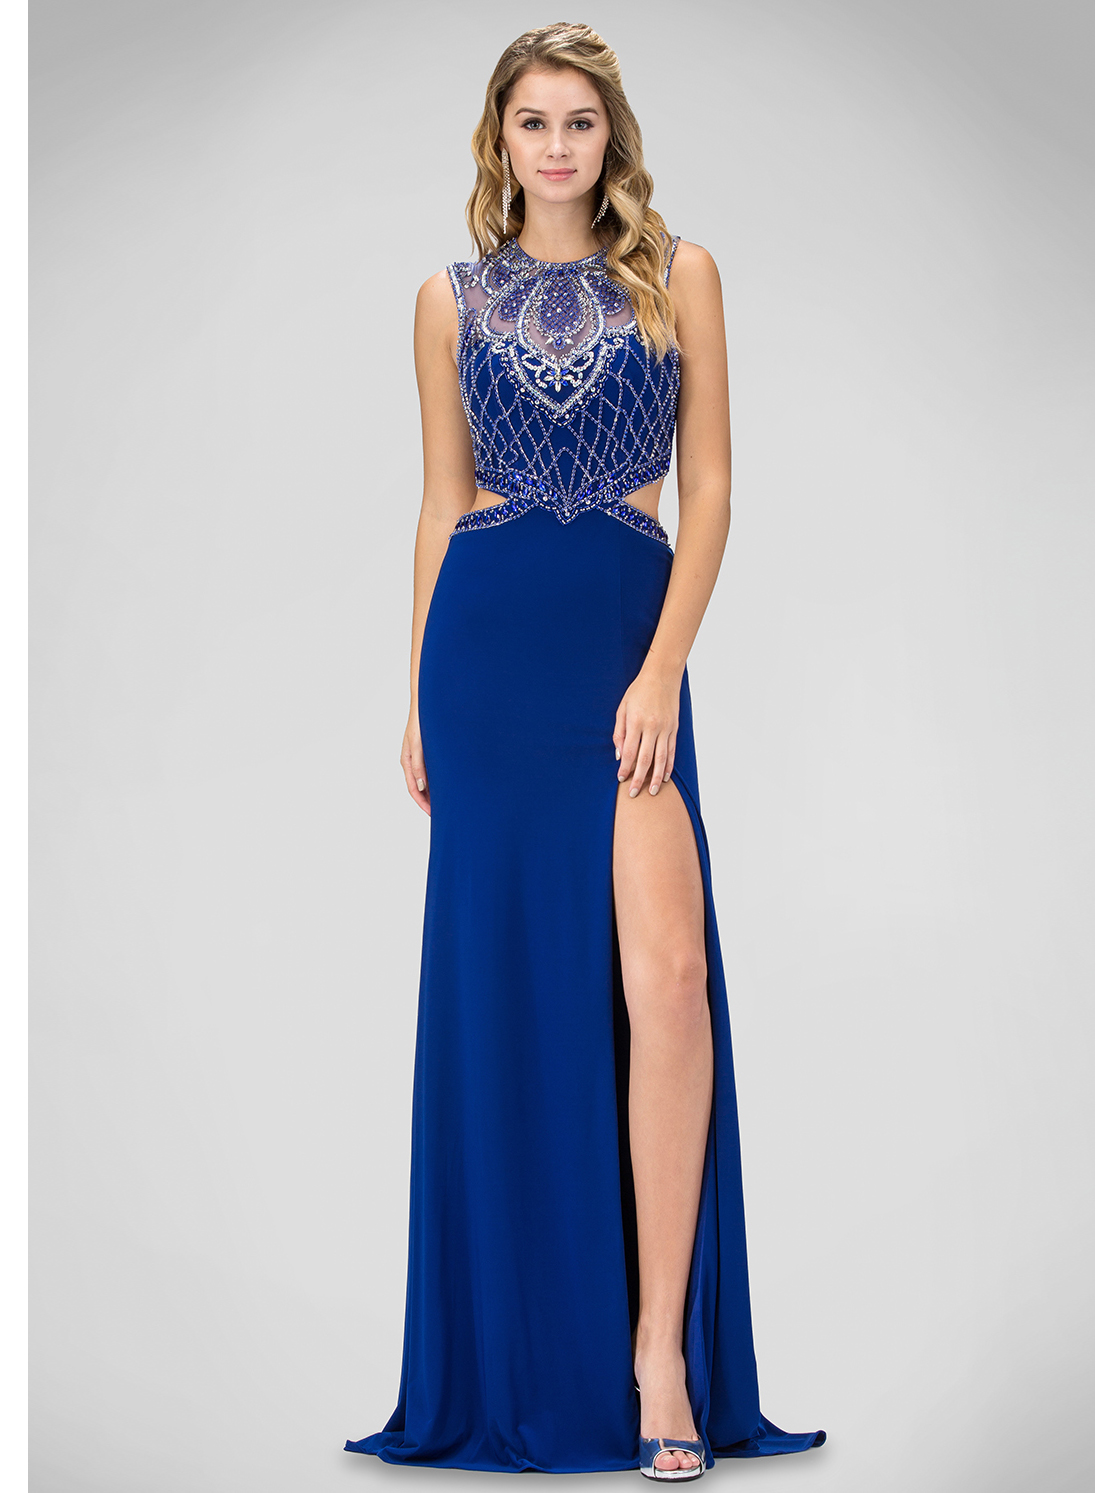 Evening Gowns with Cutouts